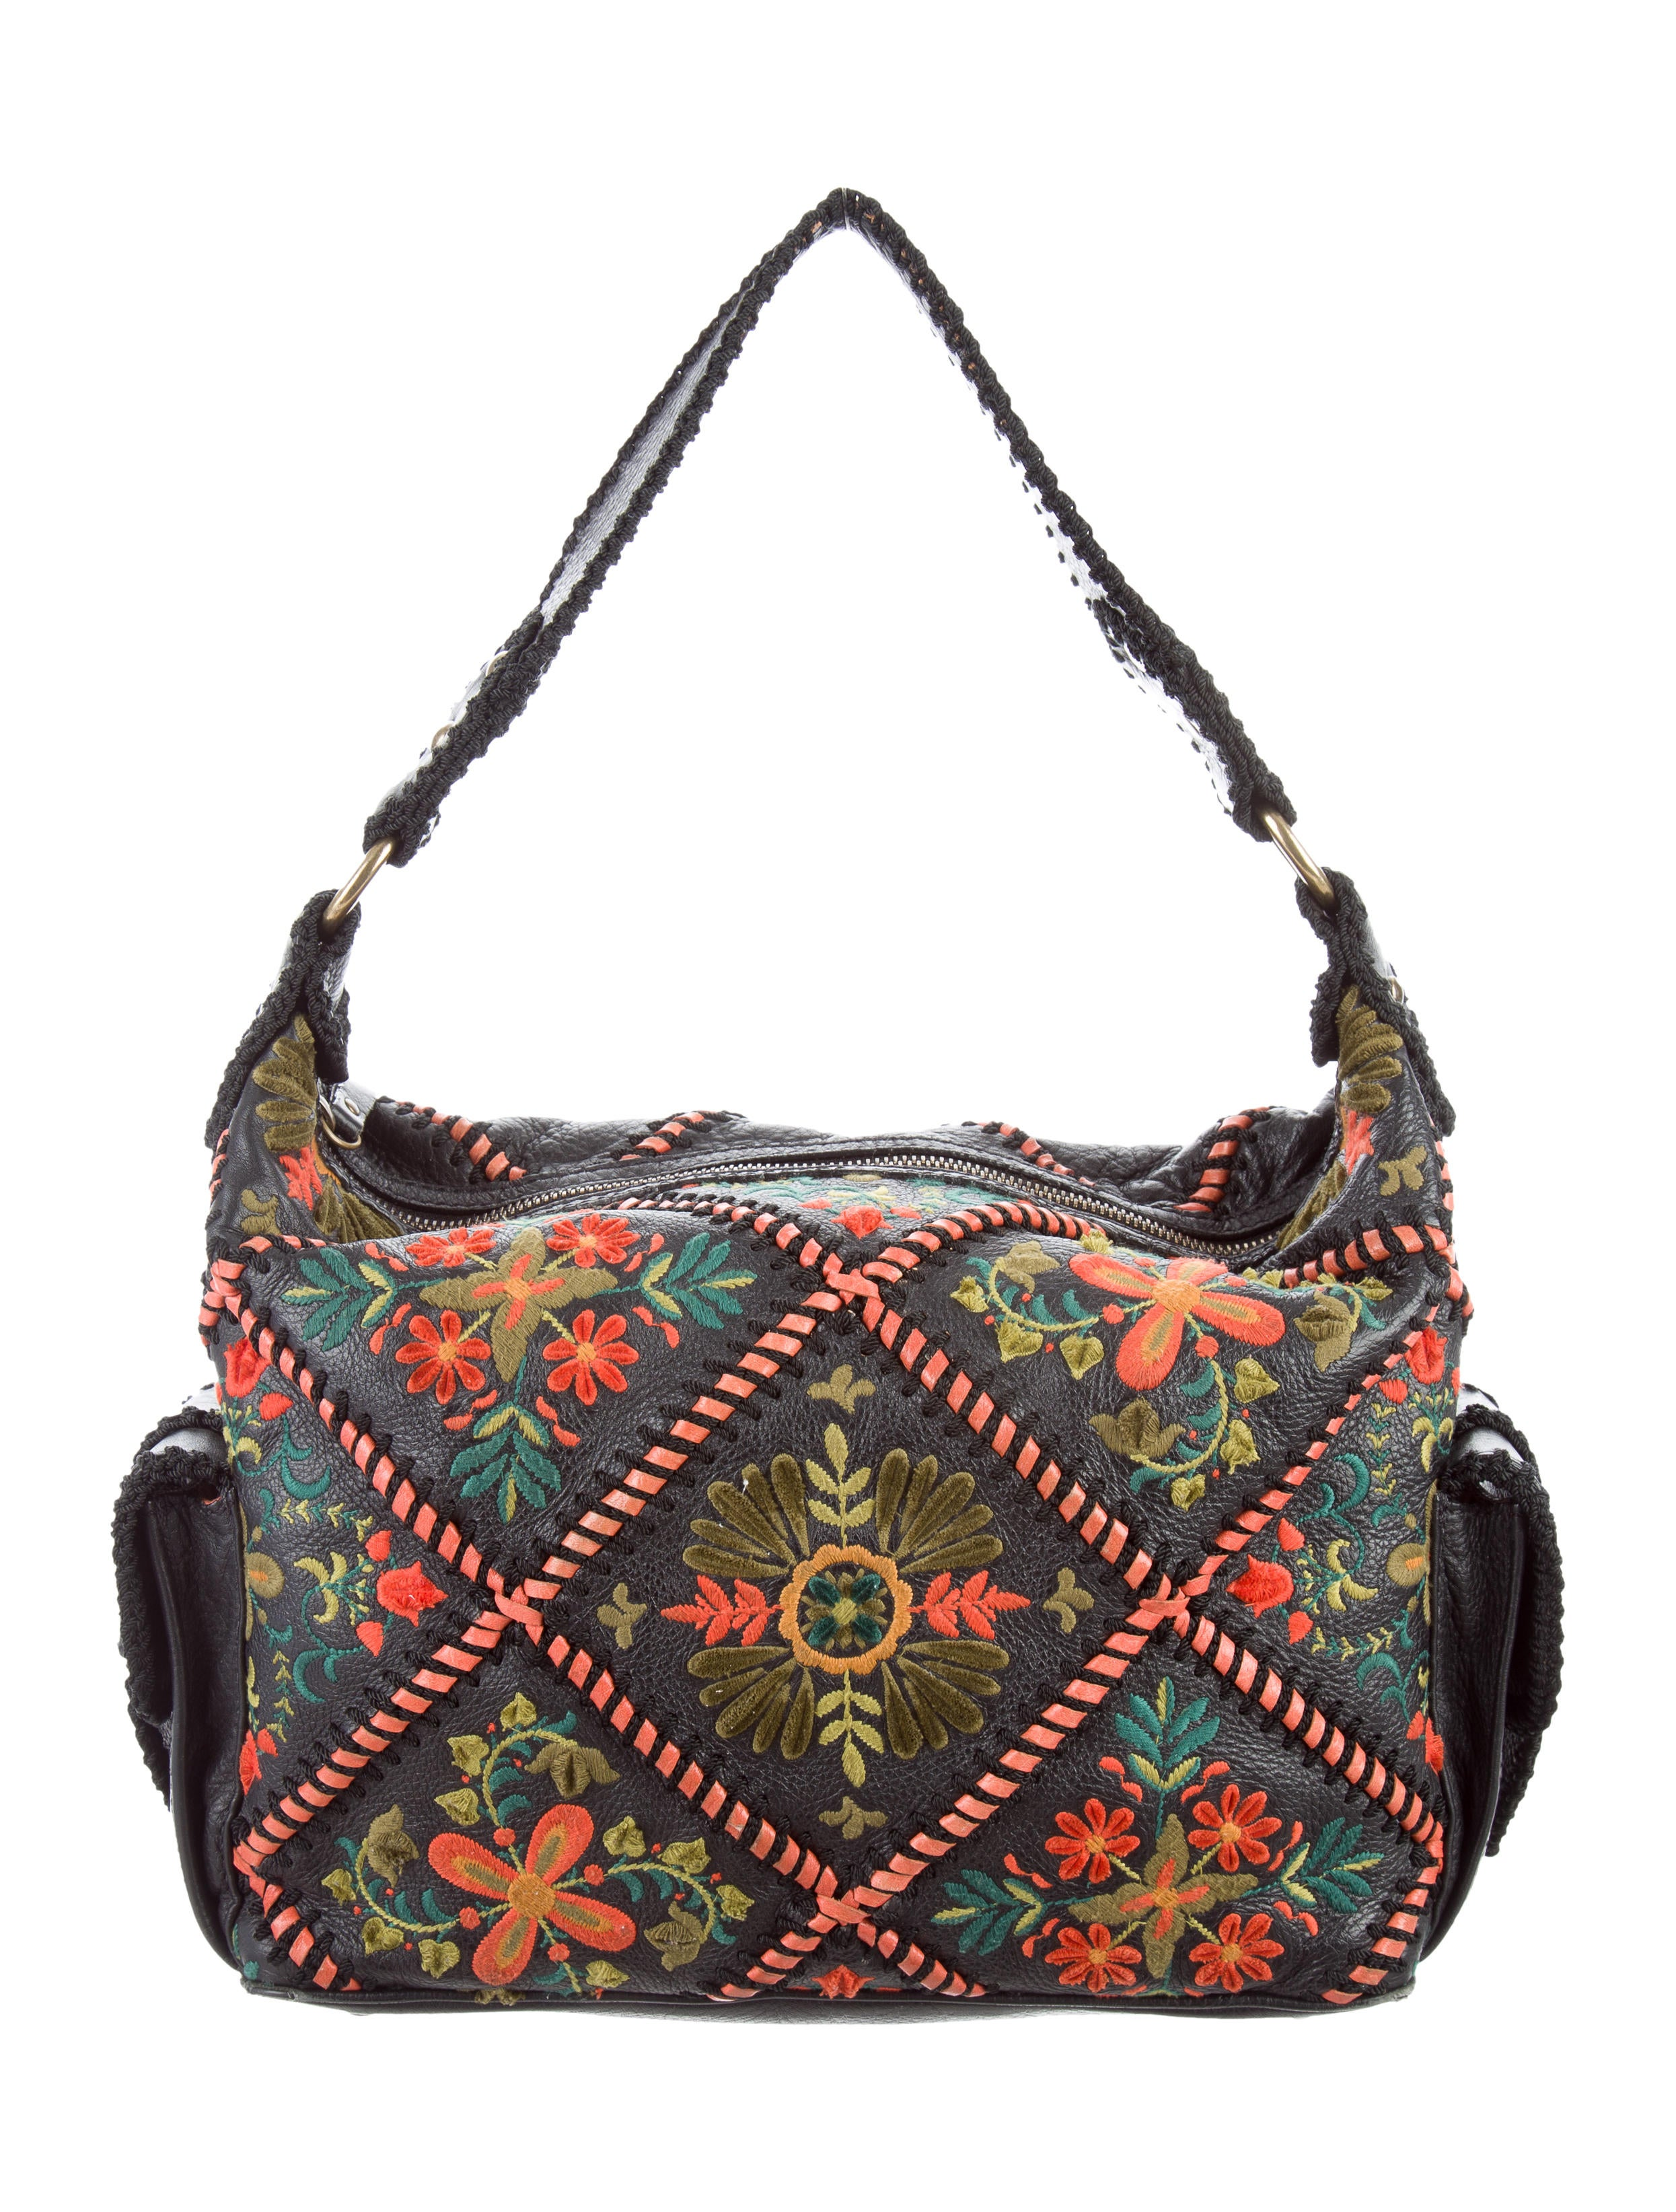 Isabella Fiore Embroidered Shoulder Bag - Handbags - WIF20042 | The RealReal